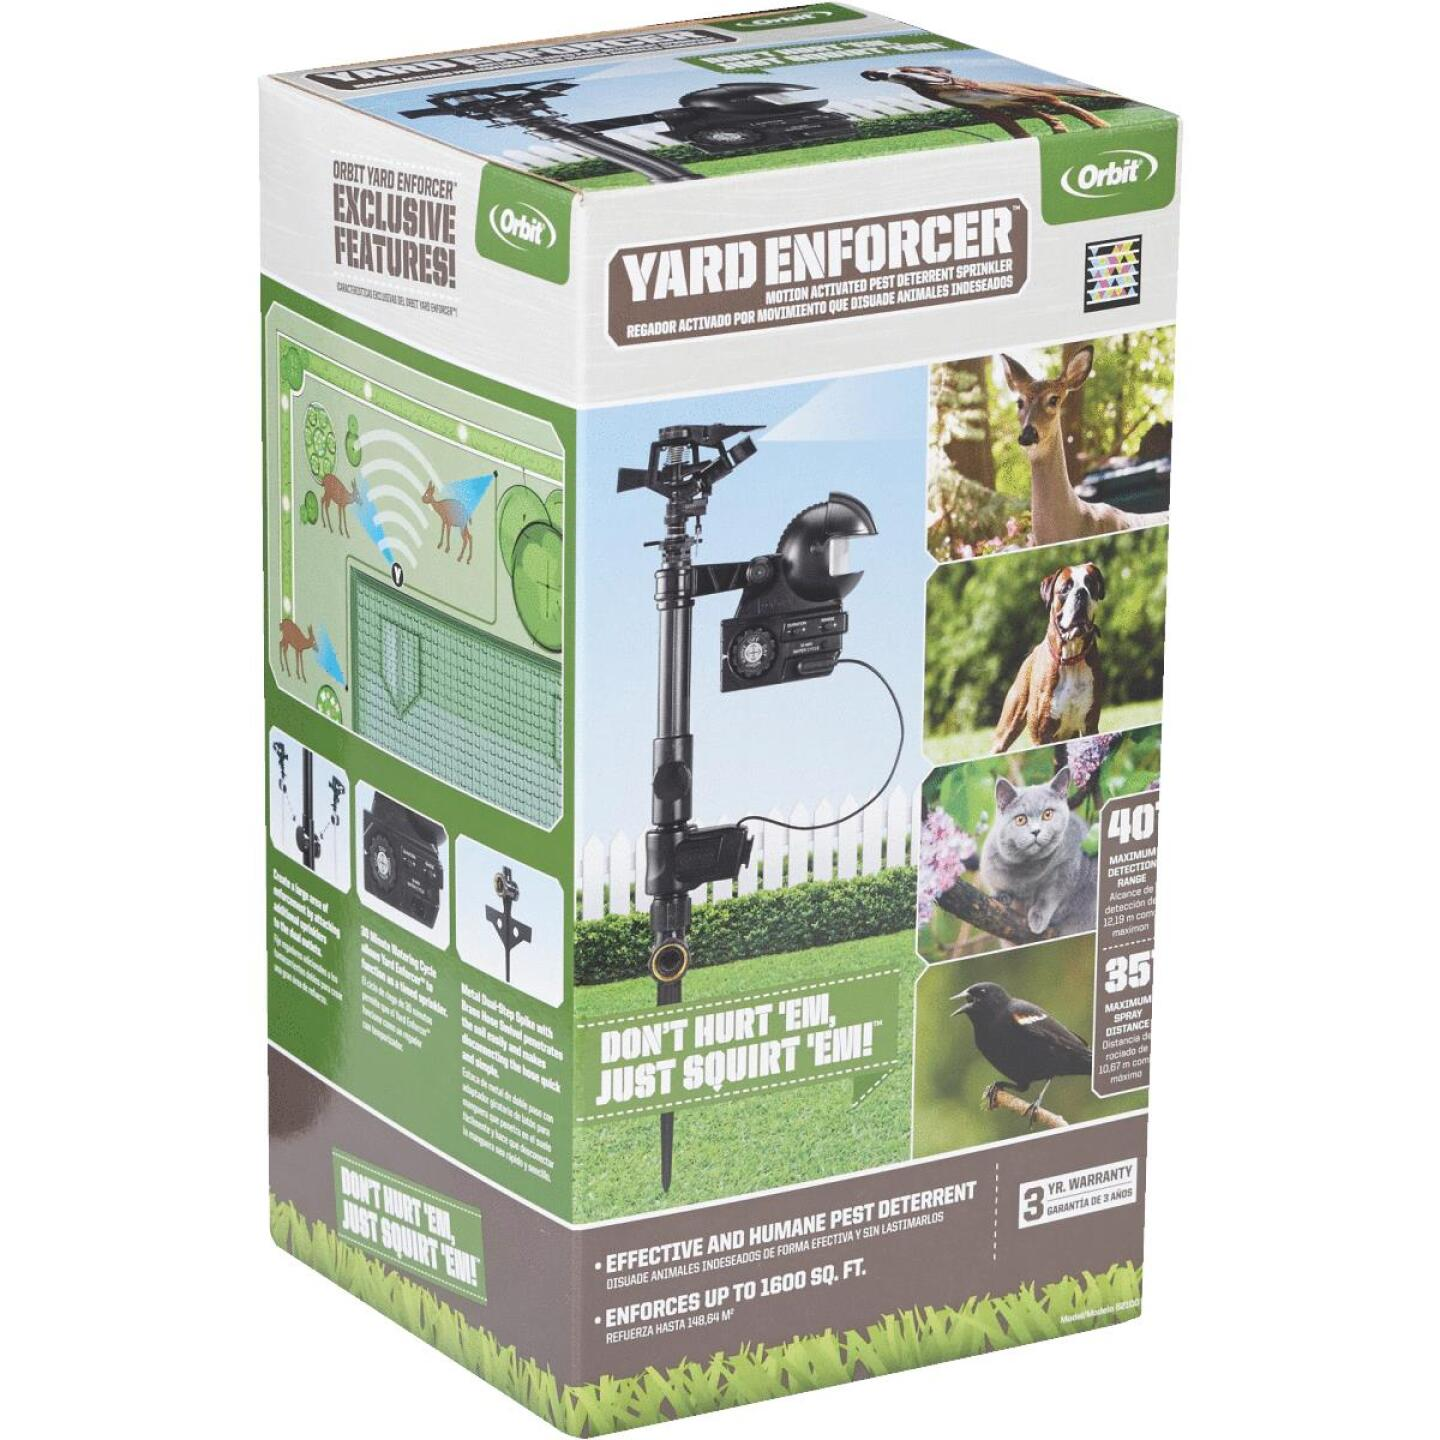 Orbit Yard Enforcer Motion Activated 1600 Sq. Ft. Coverage Electronic Pest Repellent Image 4